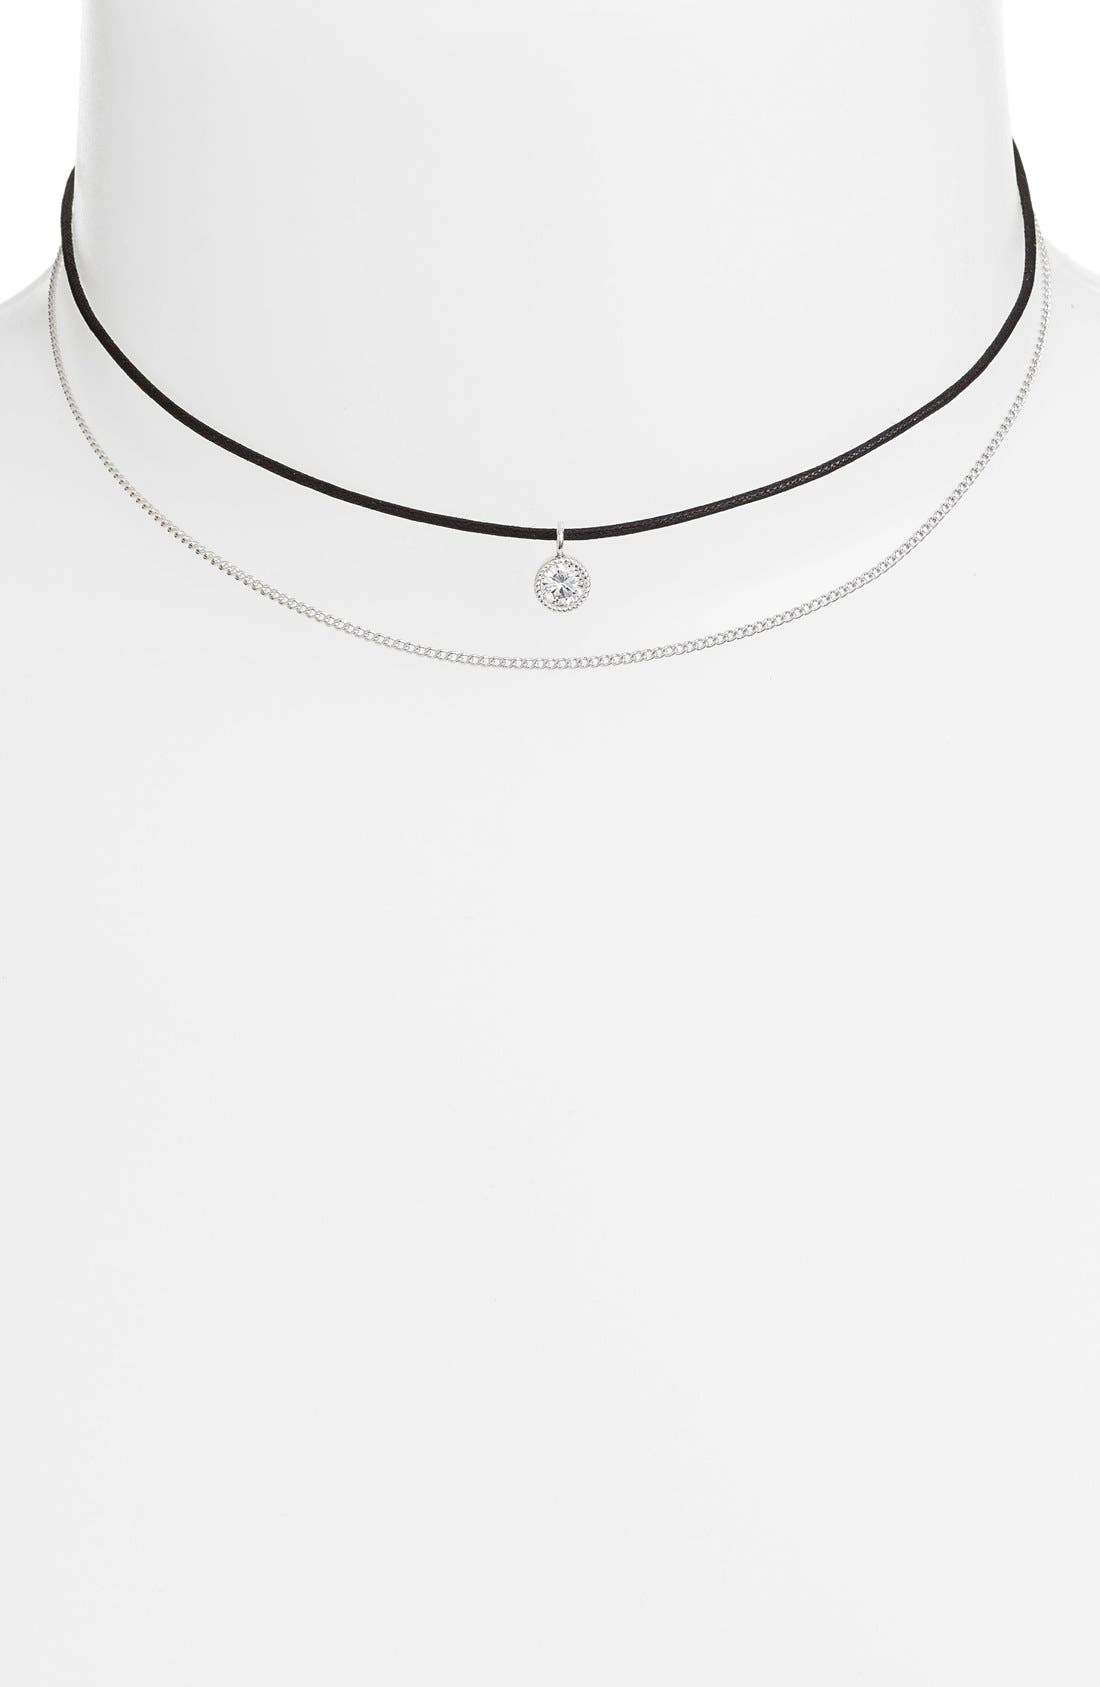 Womens Merci Choker Jules Smith